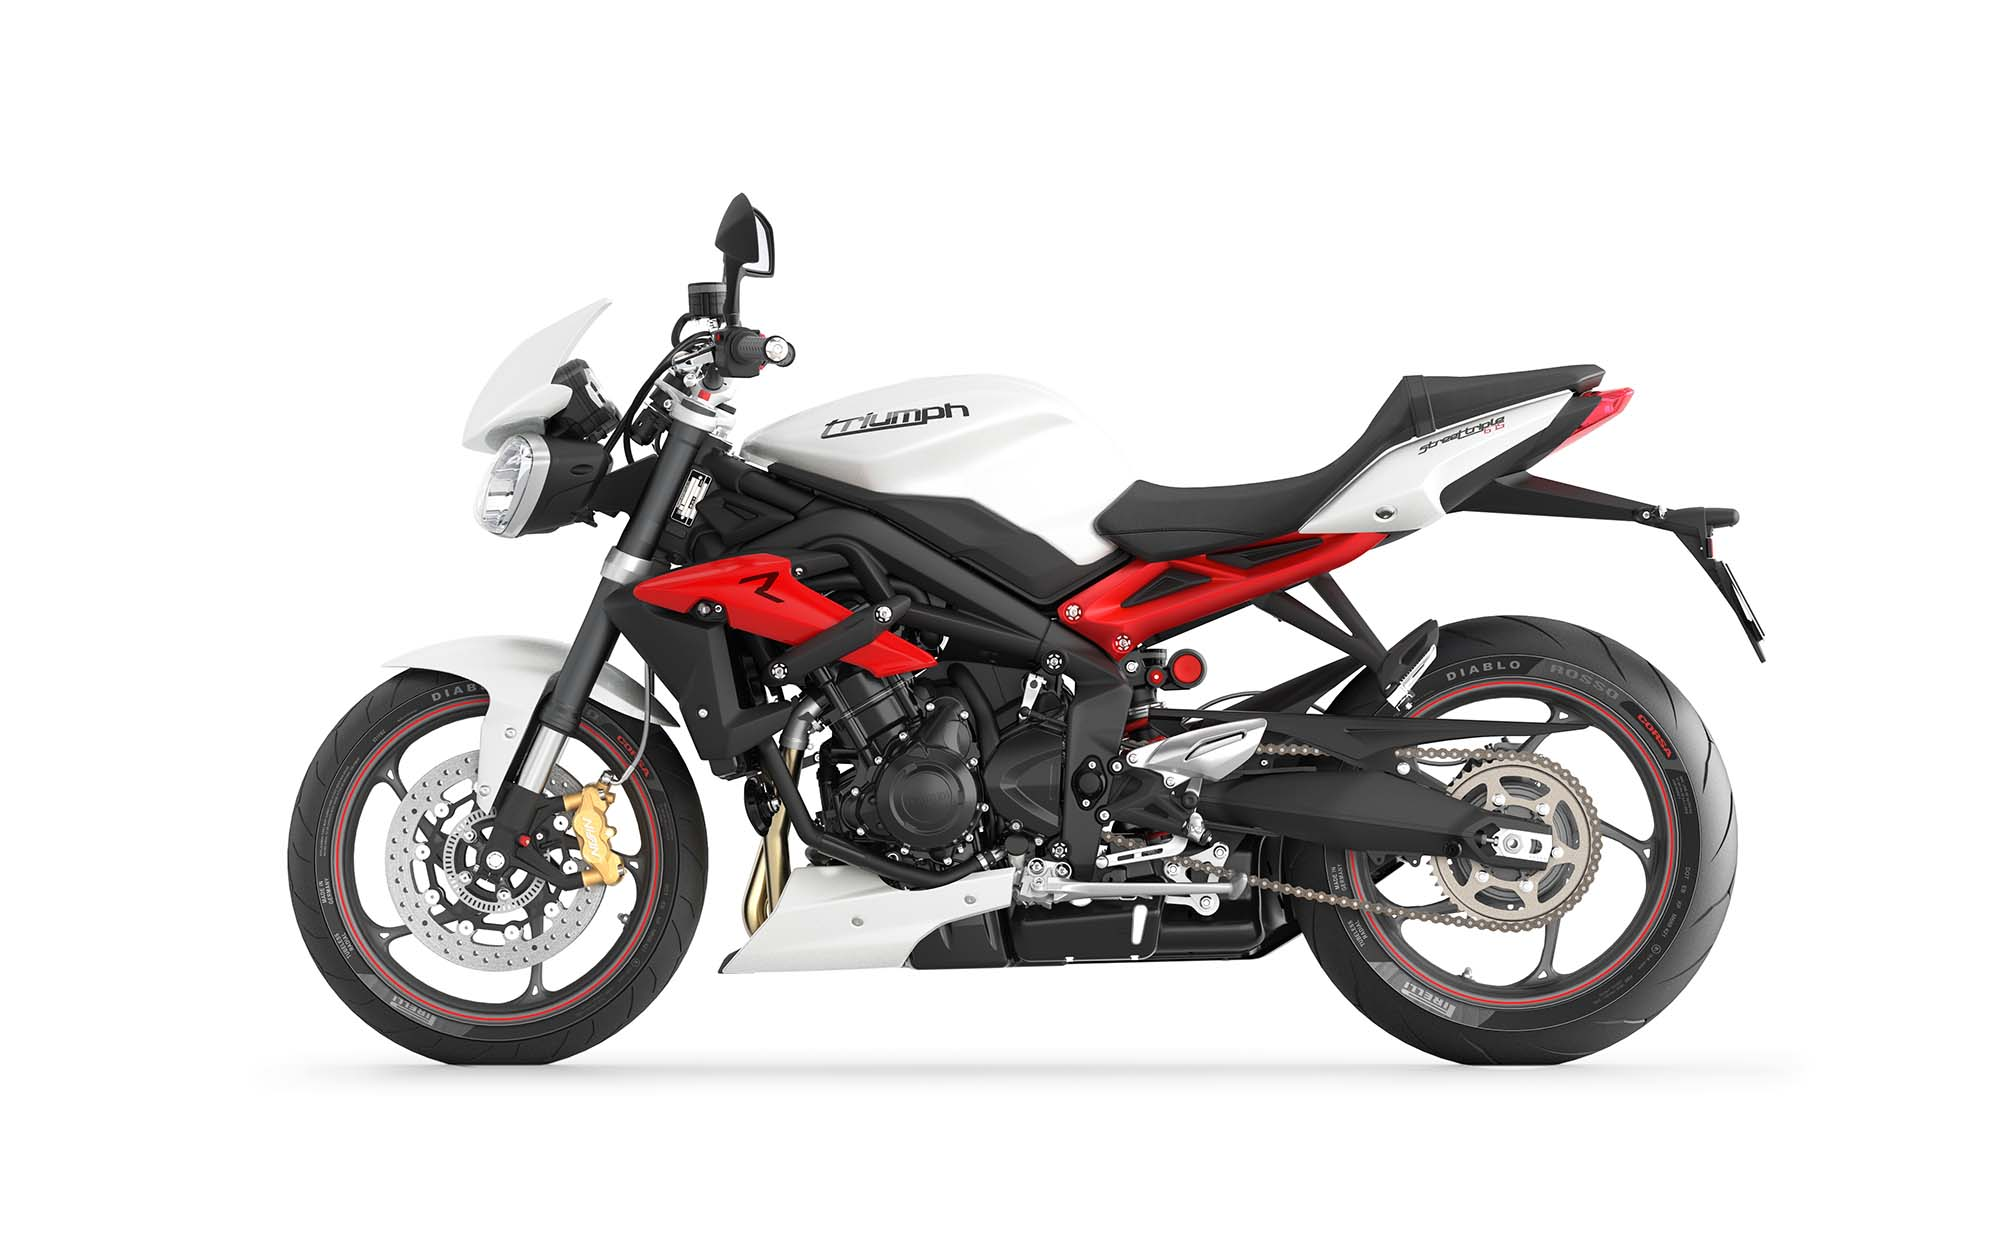 2013 triumph street triple r - loses weight, looks hotter